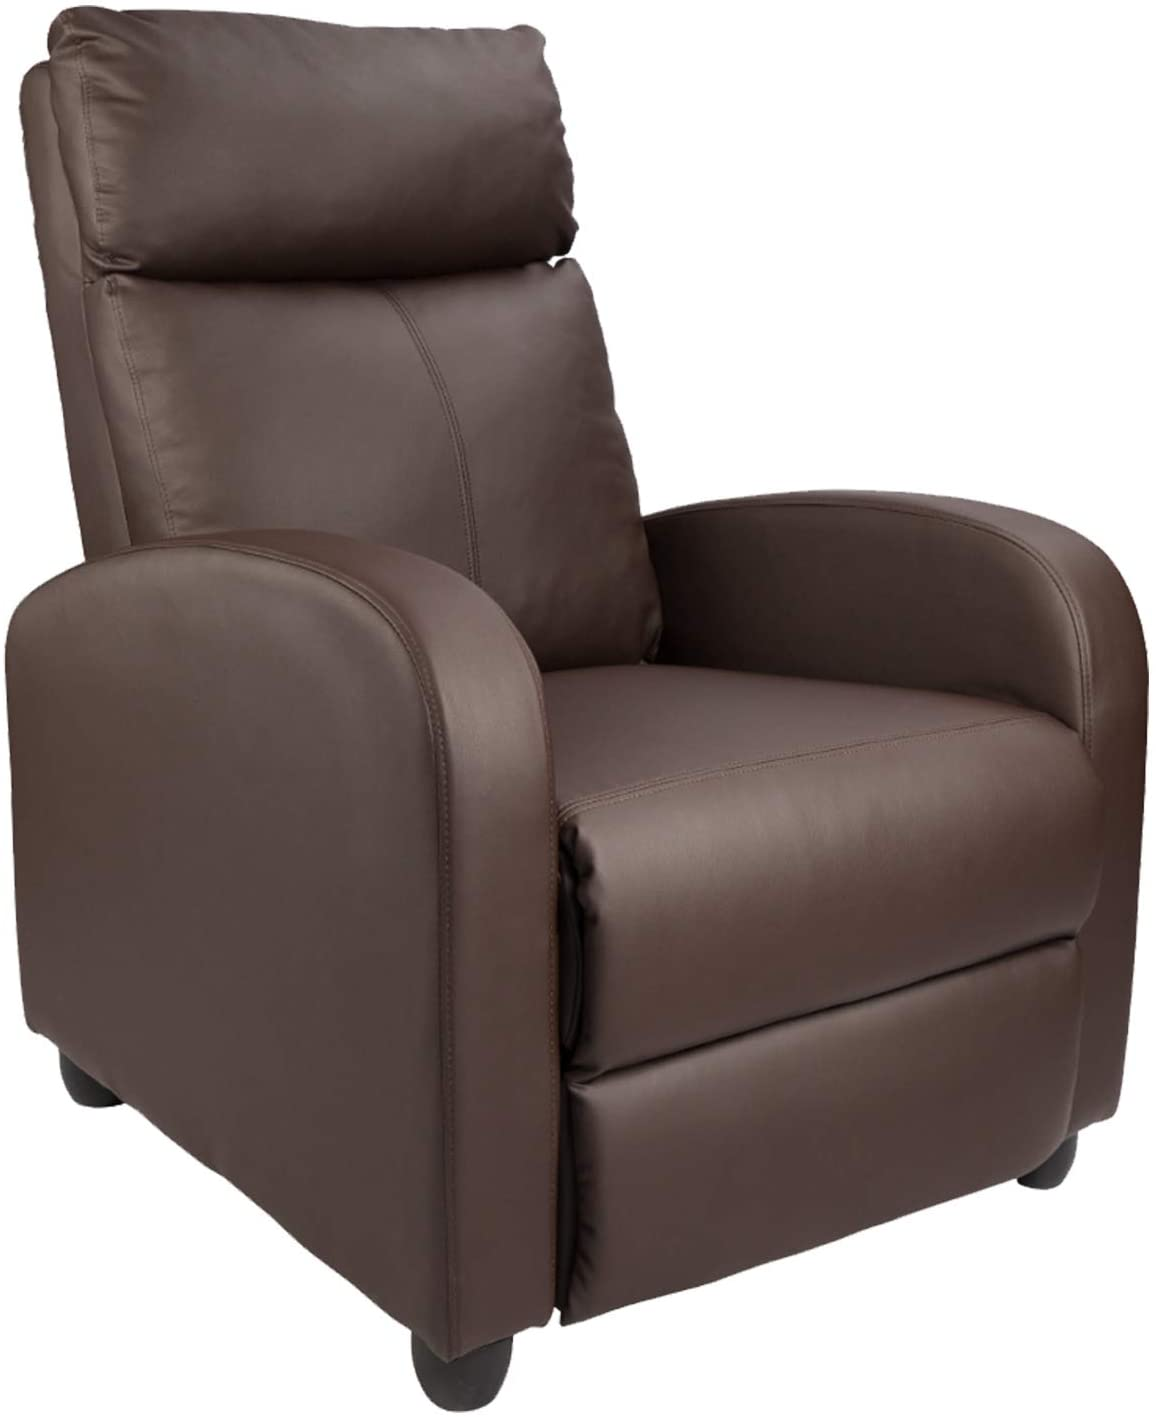 Homall-Recliner-Chair-Padded-Seat-Pu-Leather-Recliner